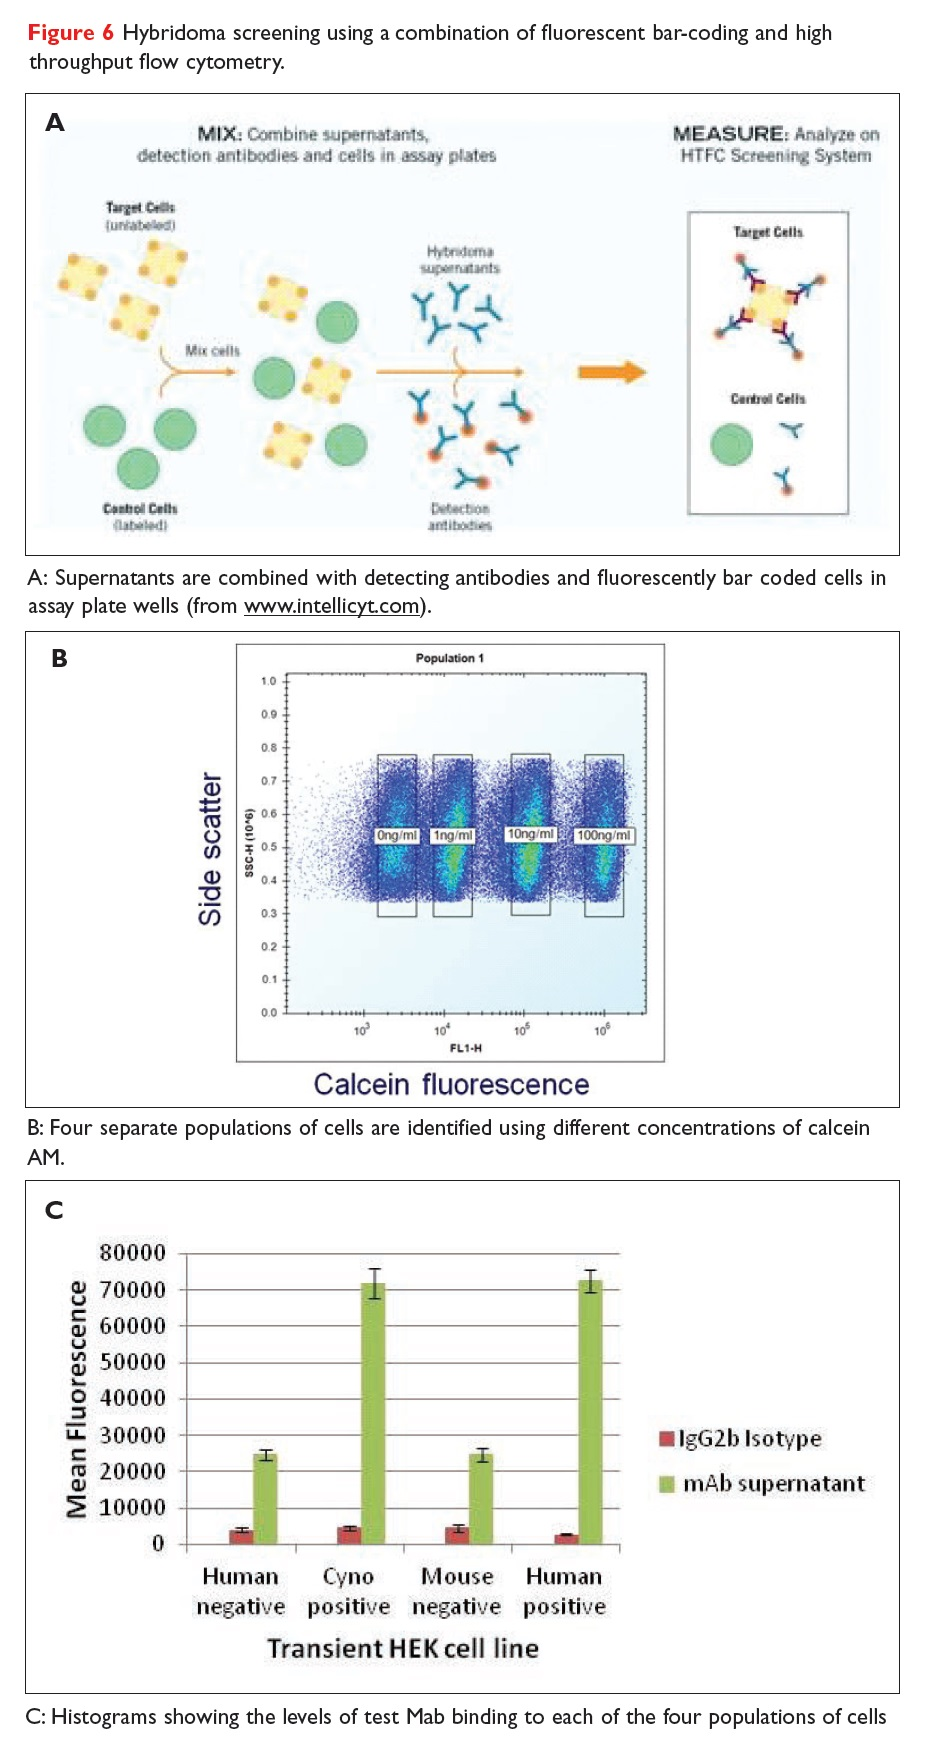 Figure 6 Hybridoma screening using a combination of fluorescent bar-coding and high throughput flow cytometry